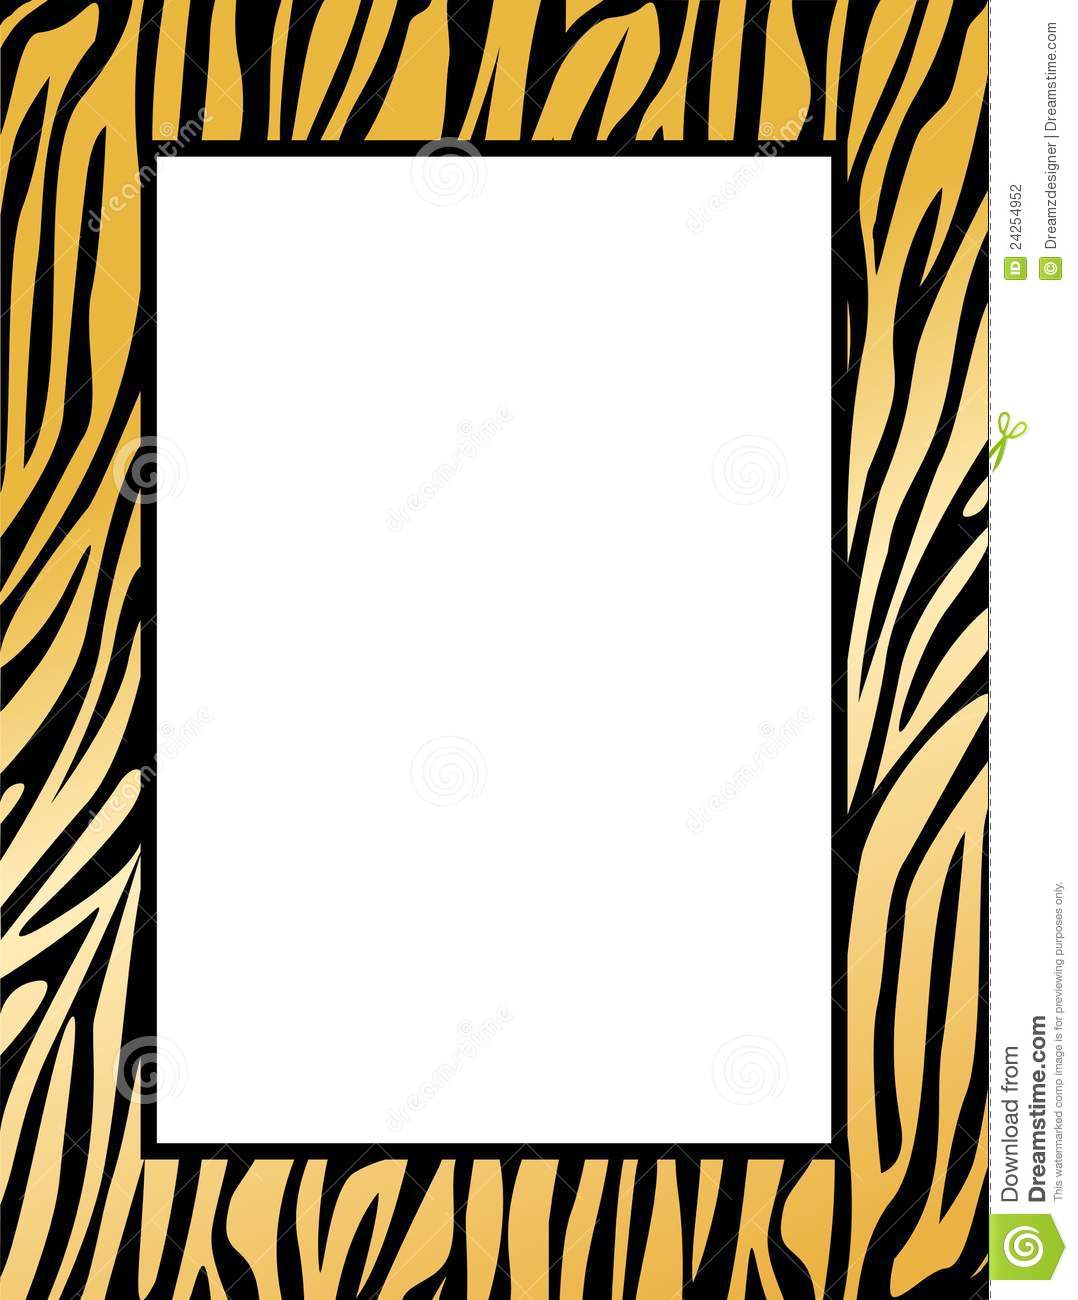 Magnificent zebra print business cards photos business card ideas best leopard business cards photos business card ideas etadamfo colourmoves Image collections